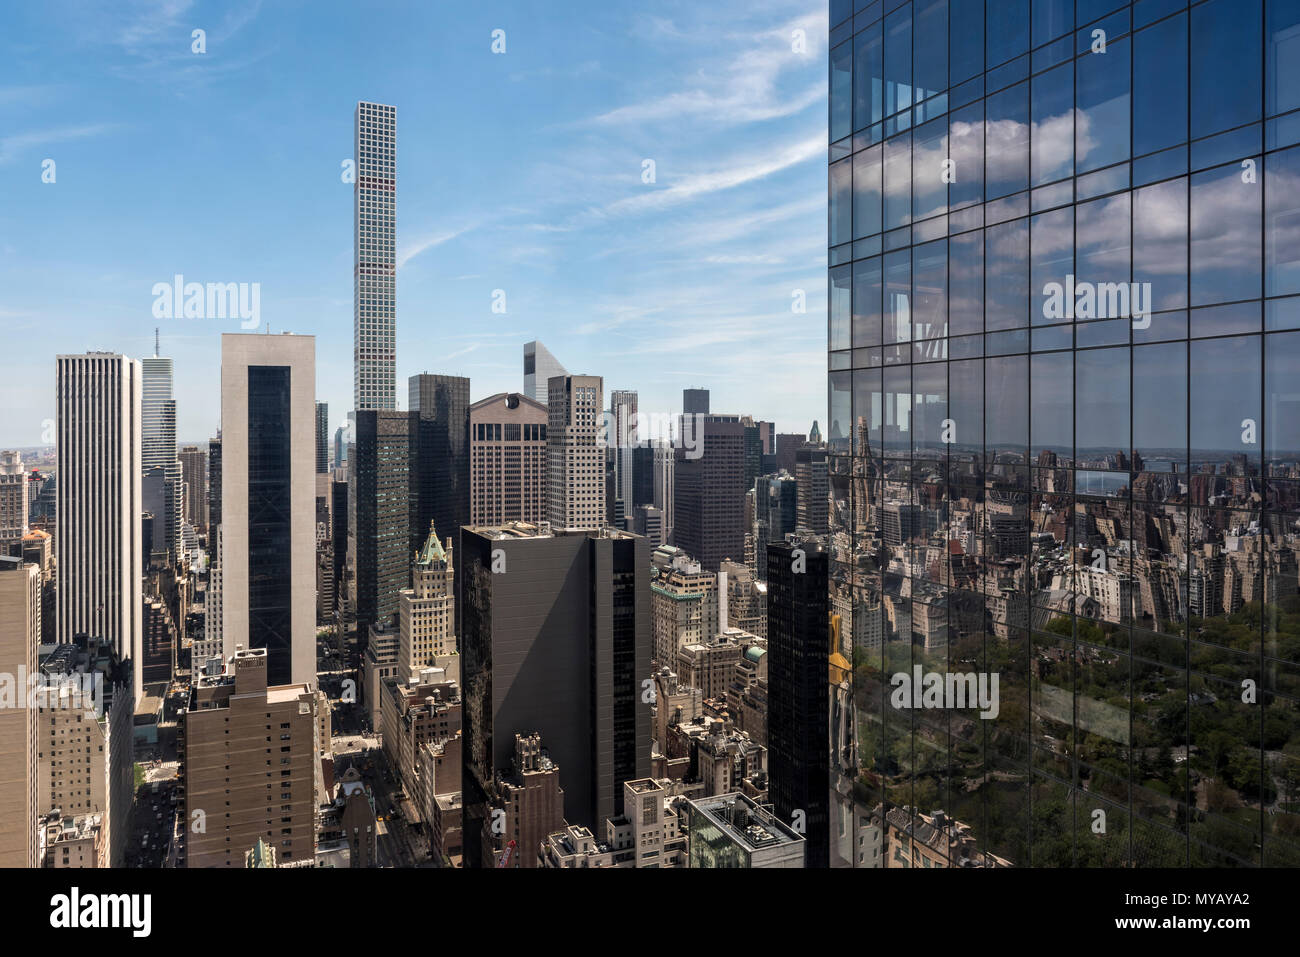 'Cityscape with skyscrapers in New York City, USA' - Stock Image